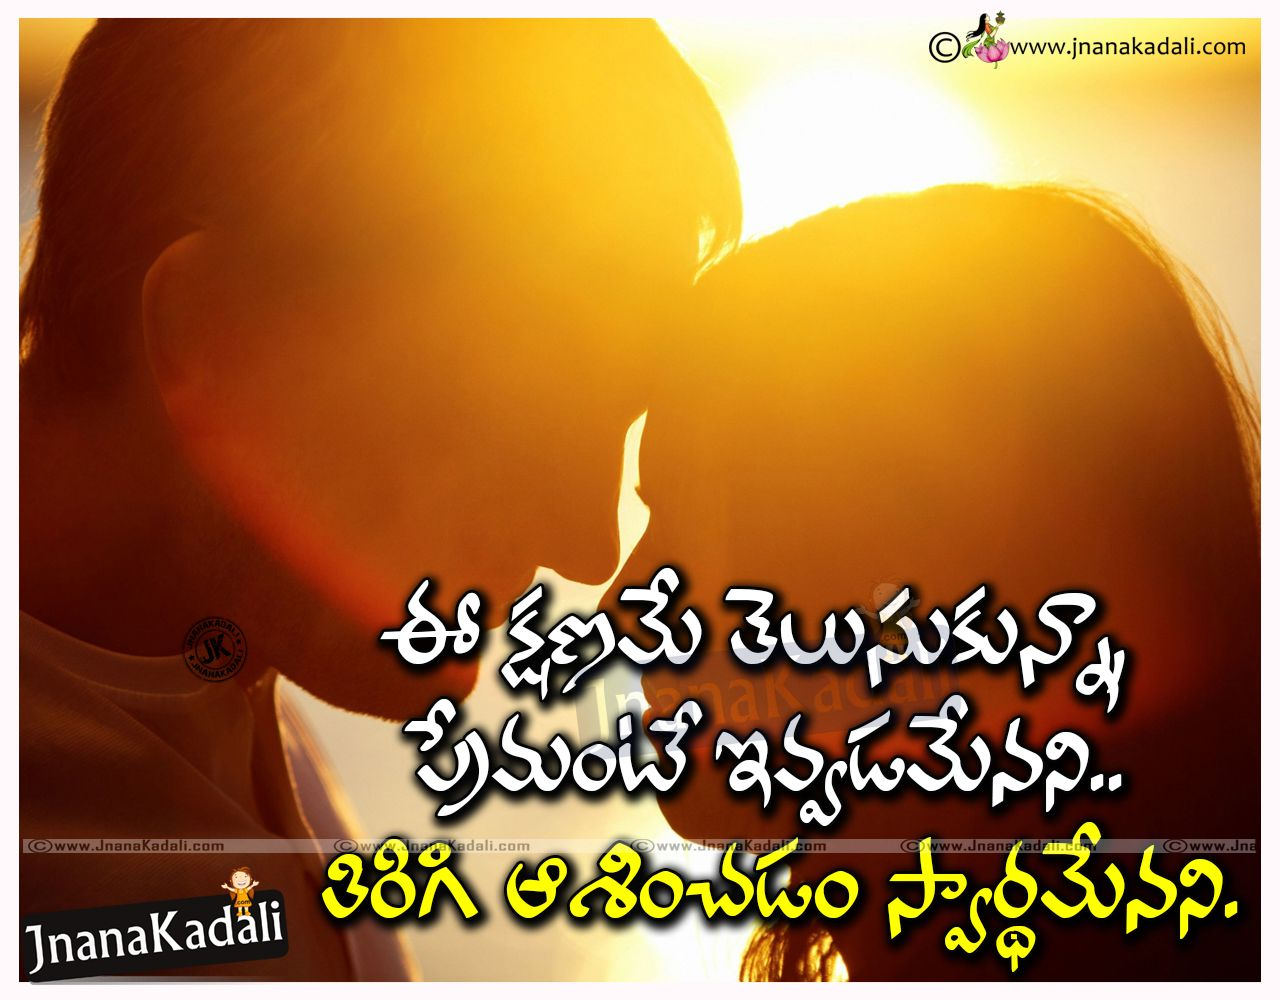 Romantic Heart Touching Love Quotes In Telugu With Hd Wallpapers .